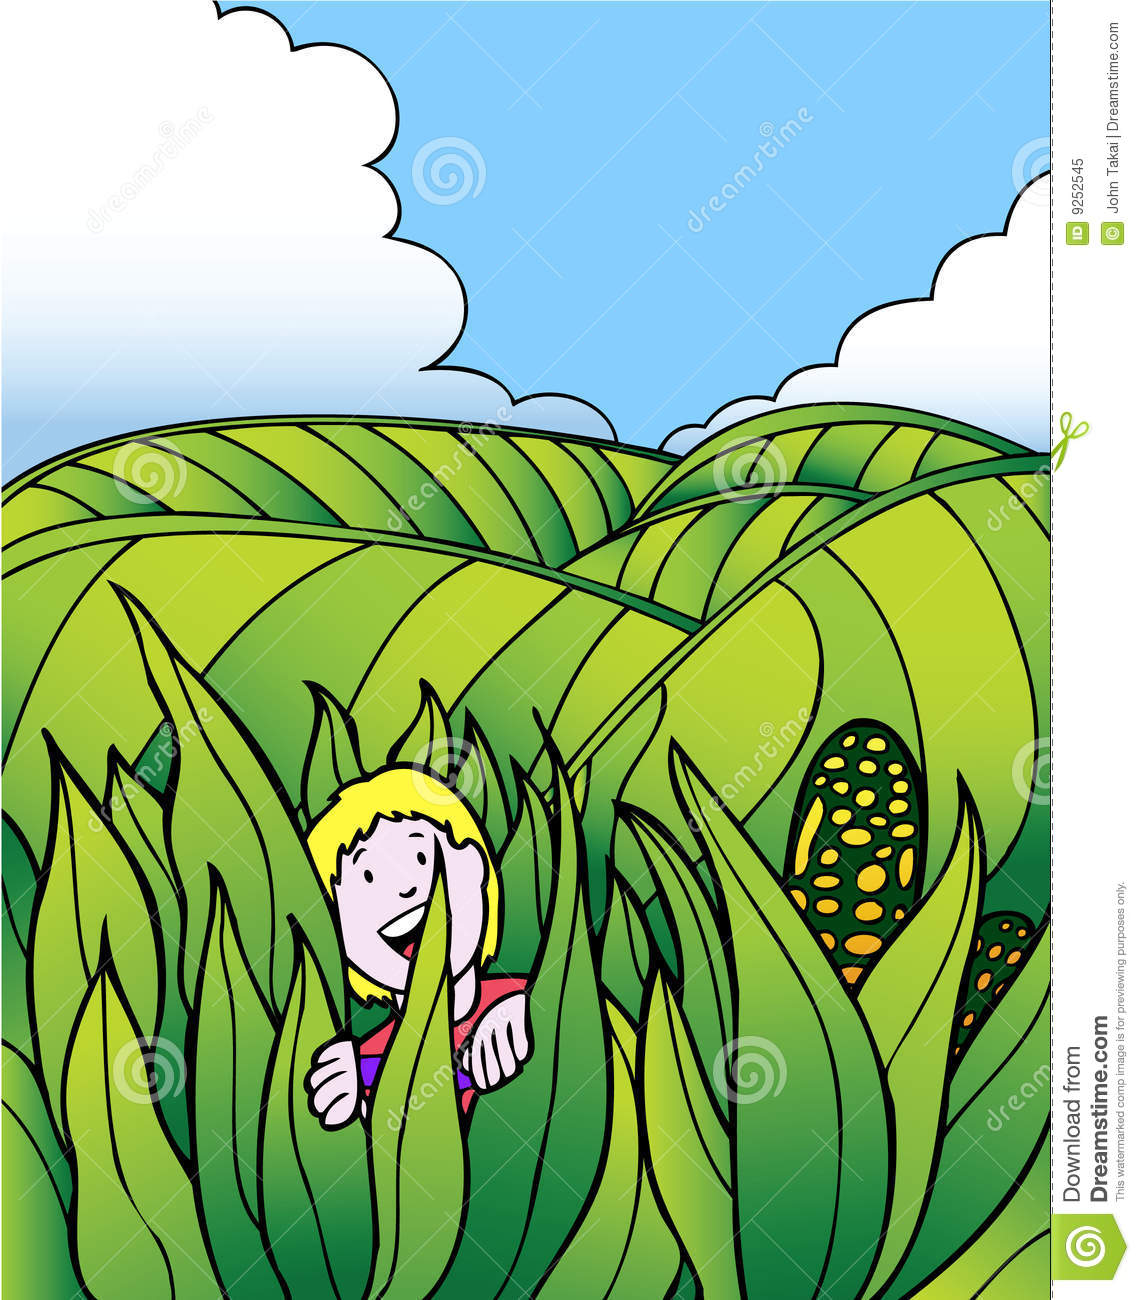 Cornfield clipart crop field Adventure cps Corn Corn Clipart